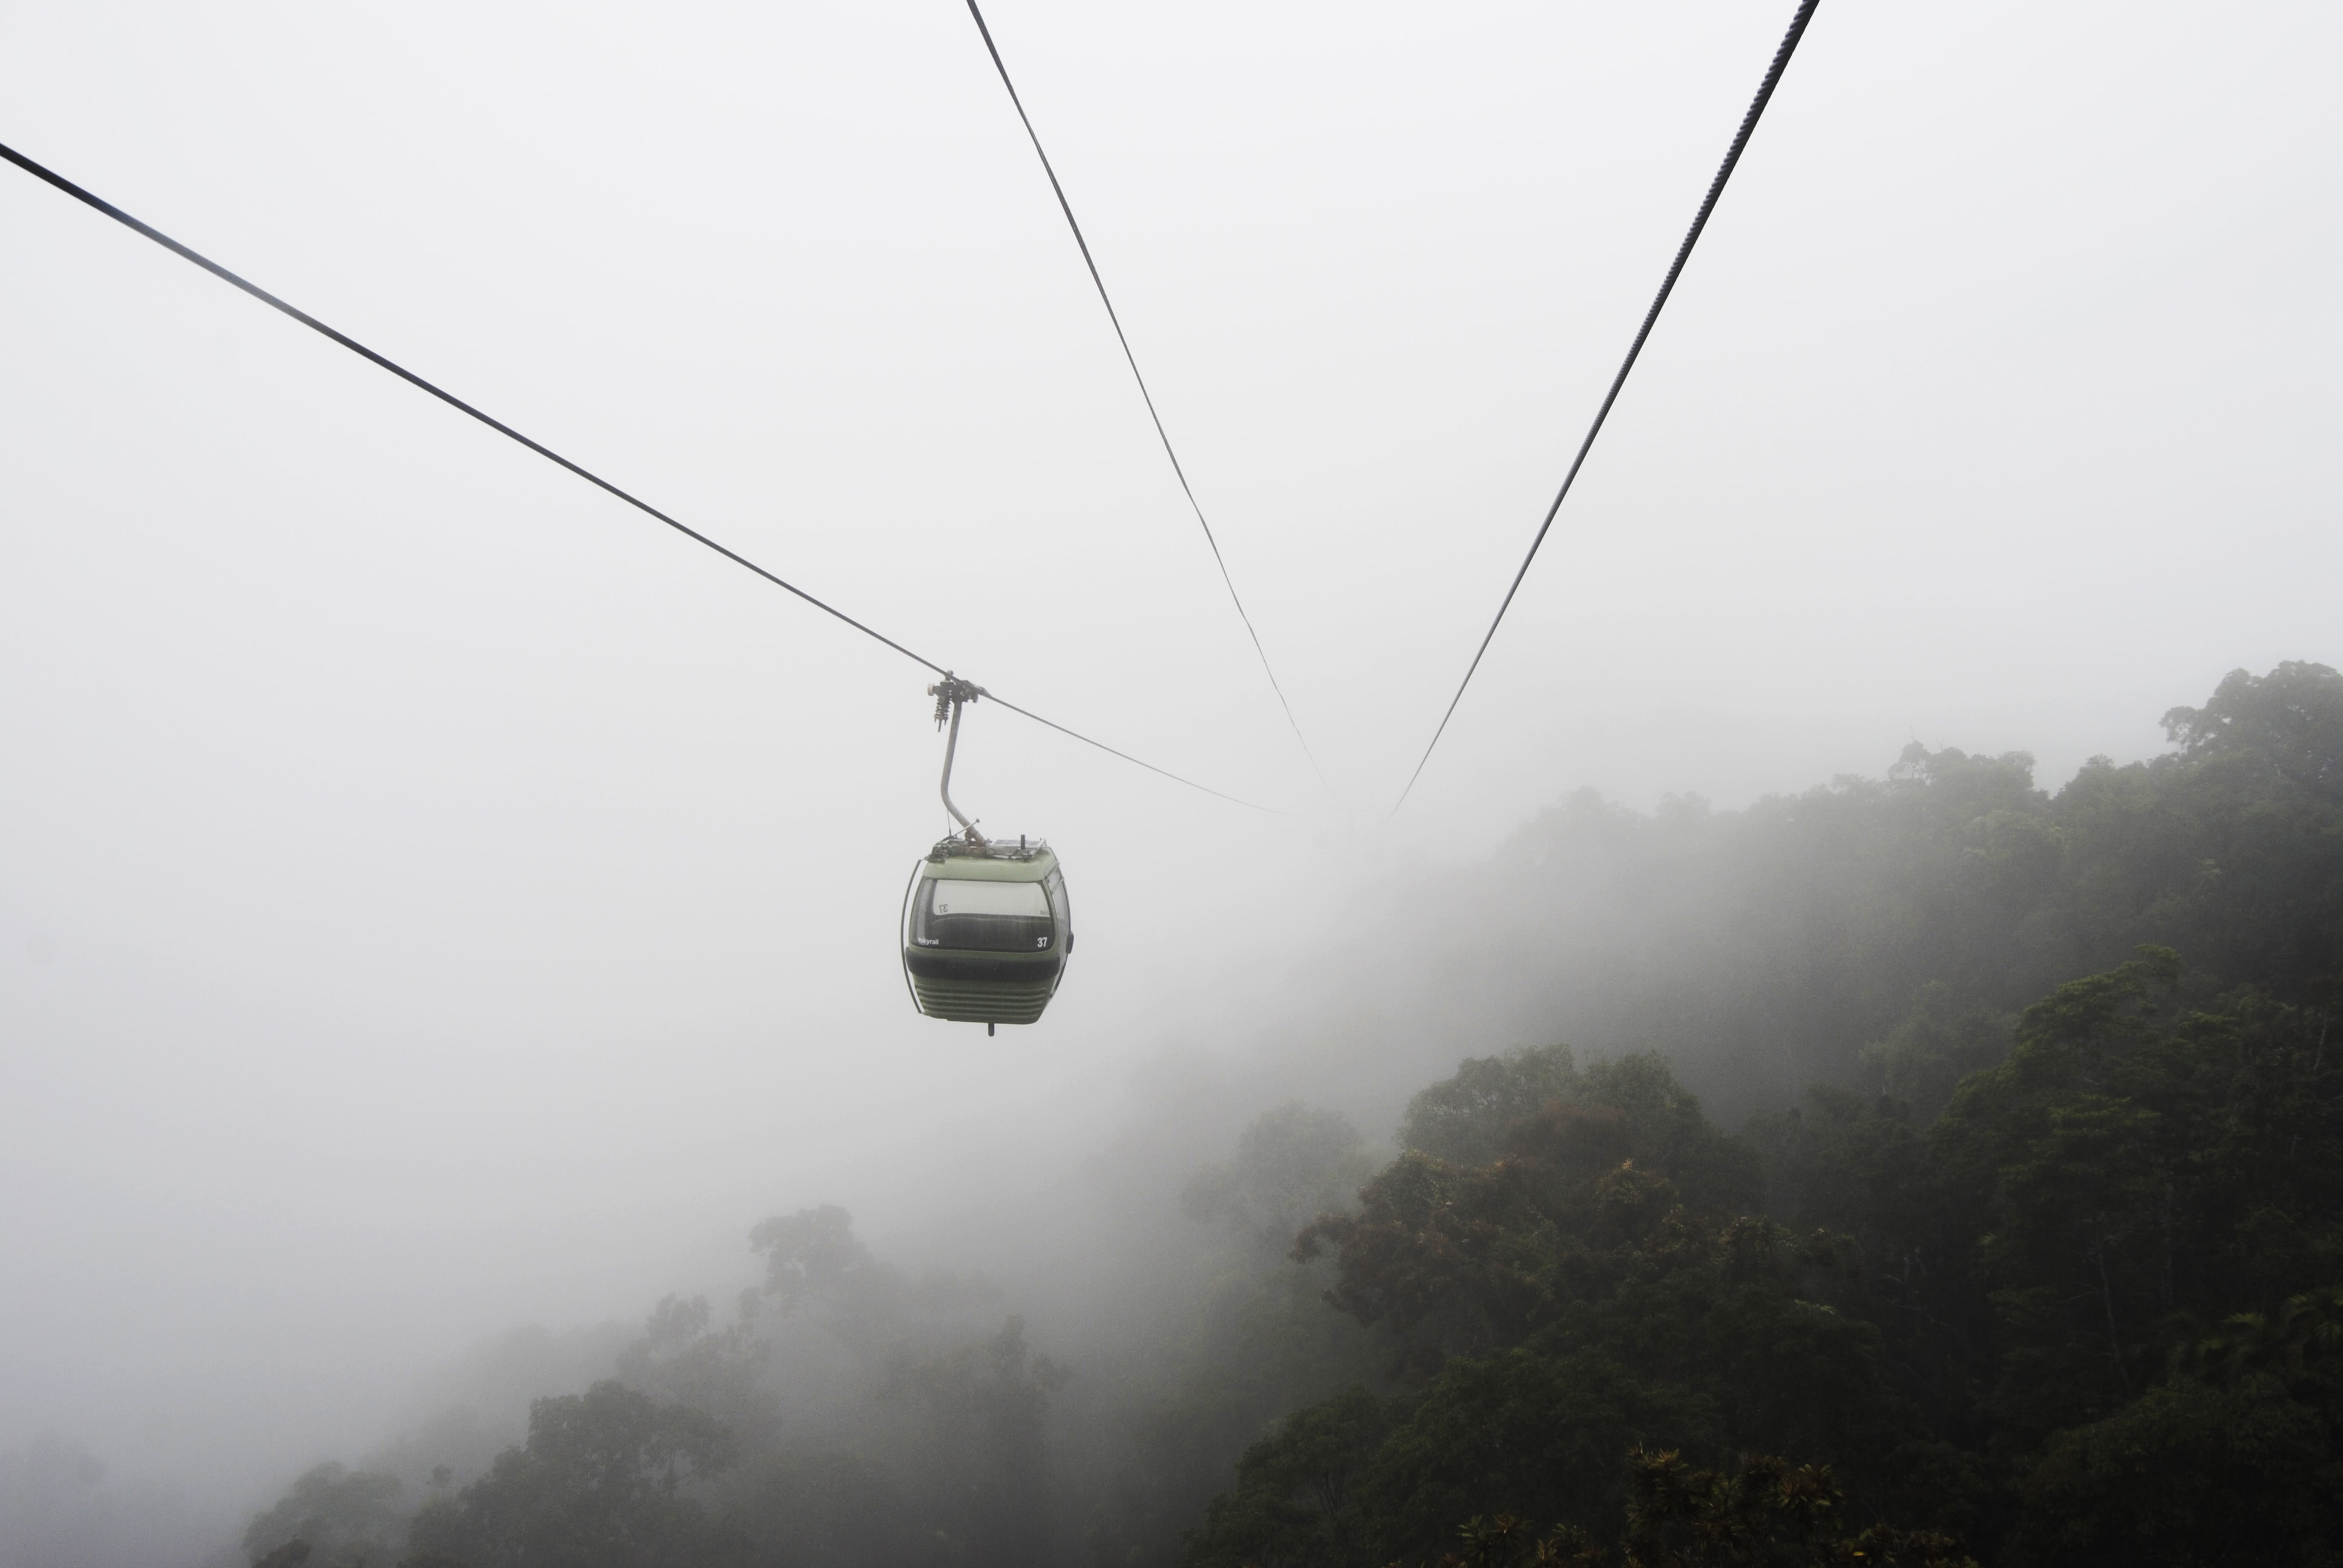 Cable lift rides over the forest canopy through mist